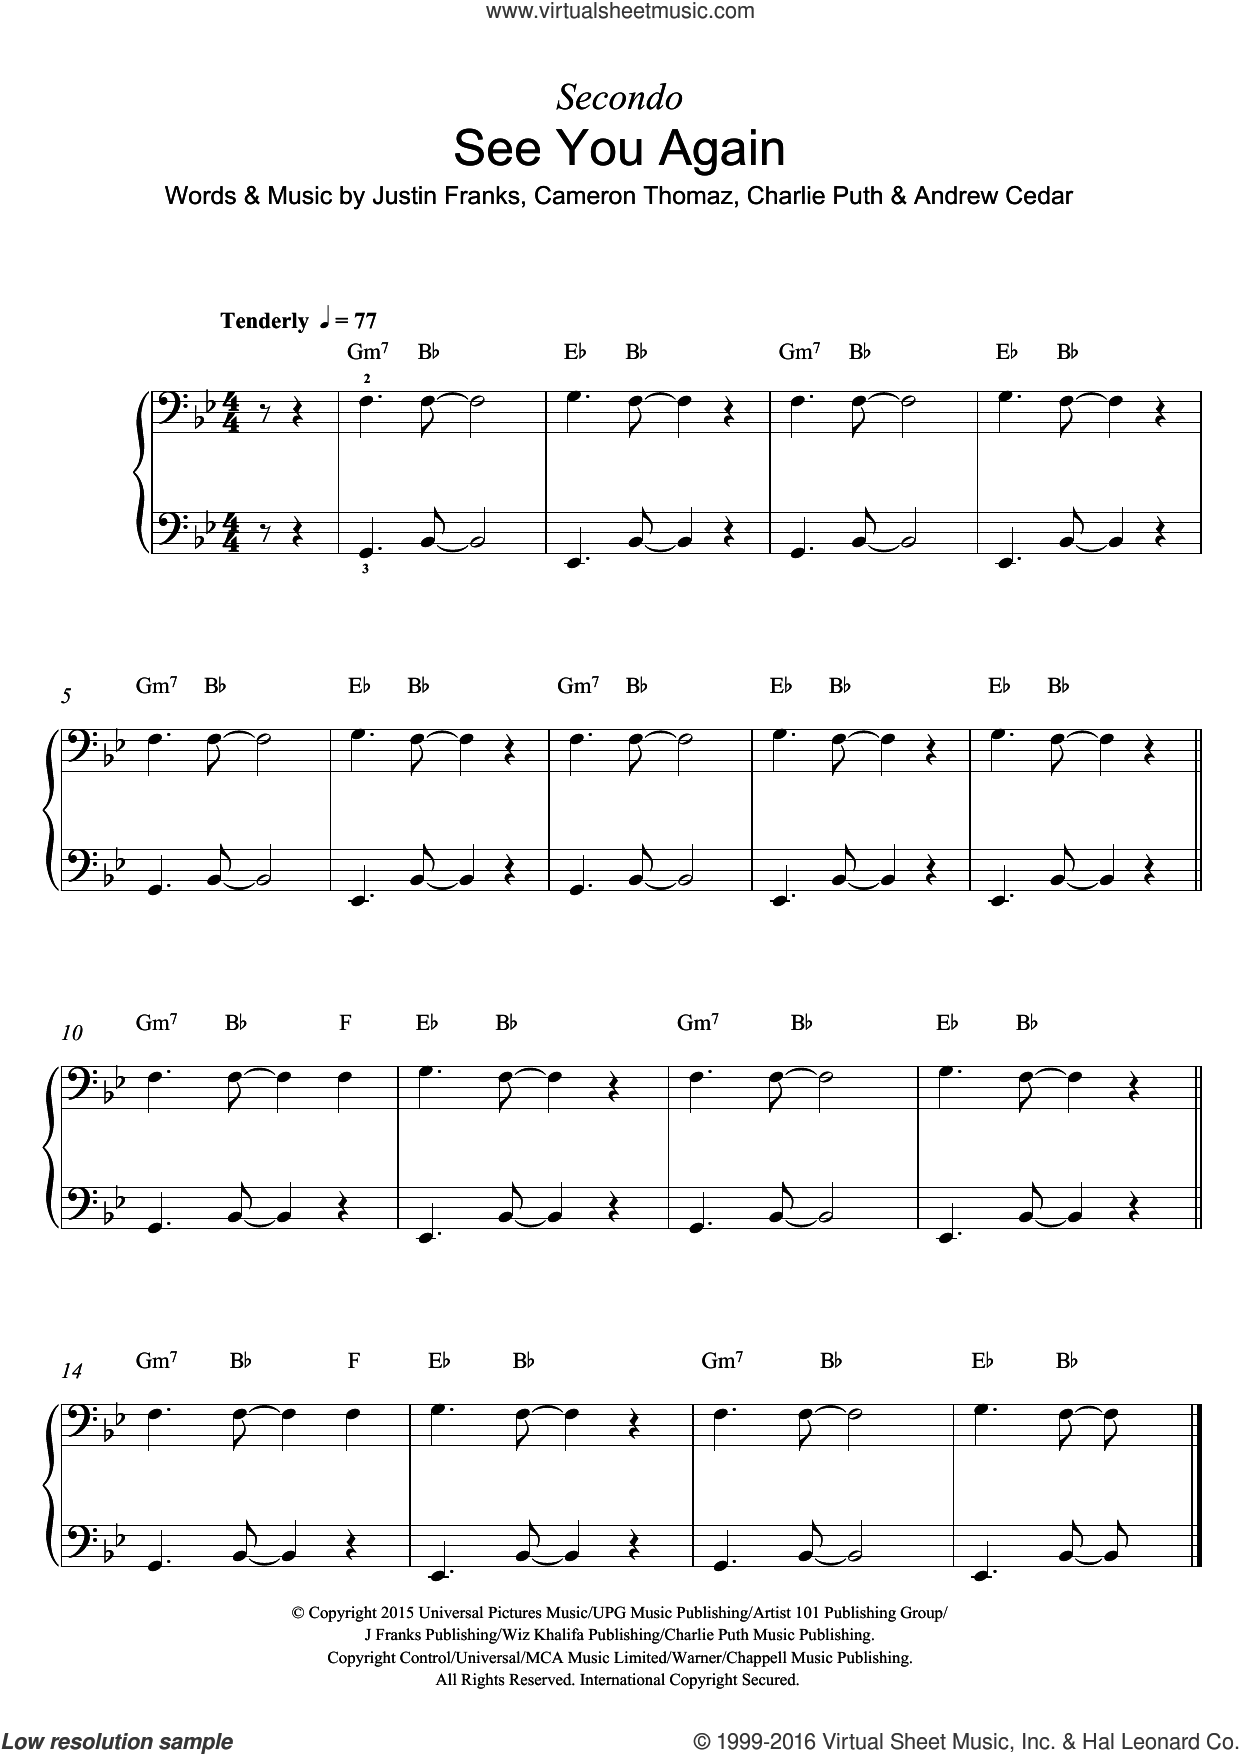 See You Again (featuring Charlie Puth) sheet music for piano solo by Wiz Khalifa, Andrew Cedar, Cameron Thomaz, Charlie Puth and Justin Franks, intermediate skill level